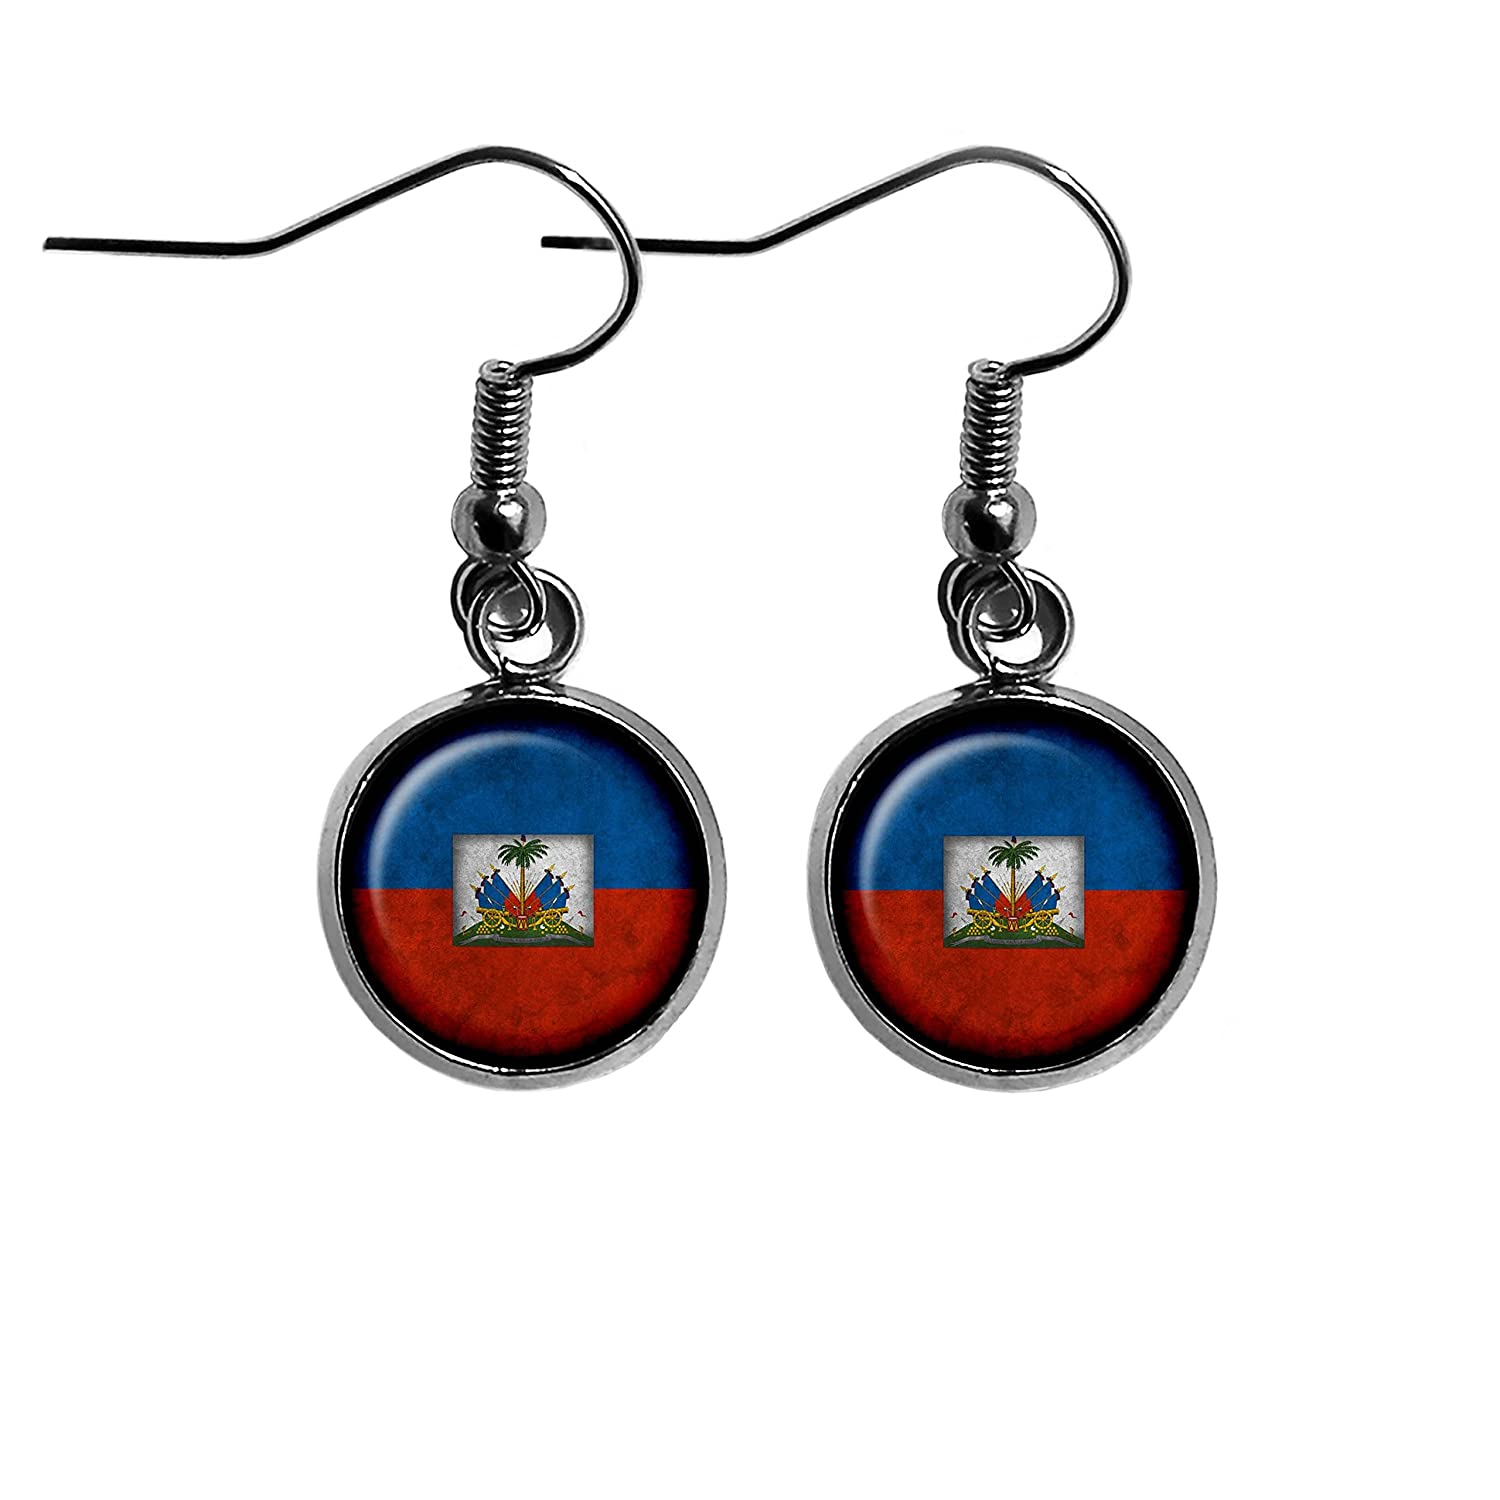 Haiti Haitian Flag Surgical Steel Earrings